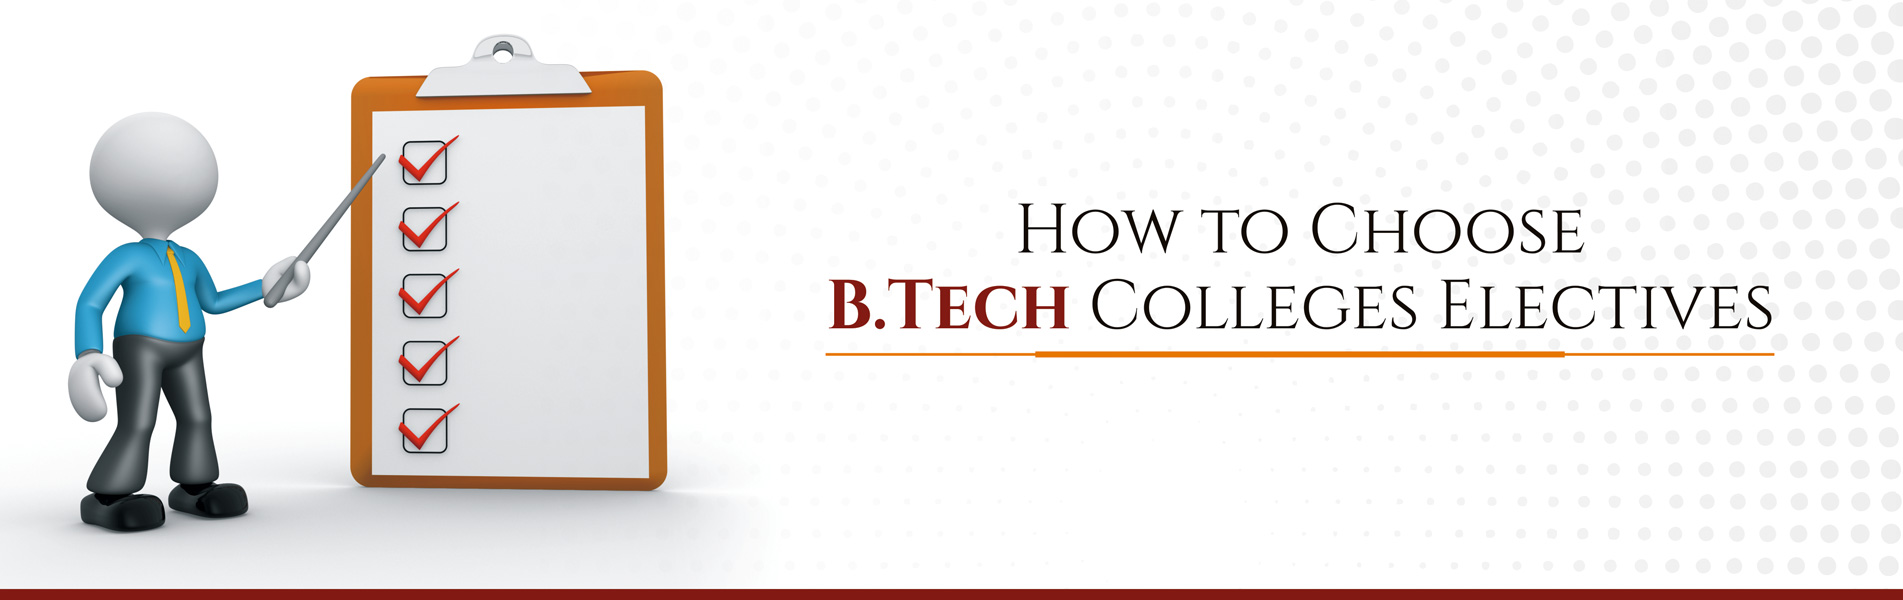 How-to-Choose-B-Tech-Colleges-Electives